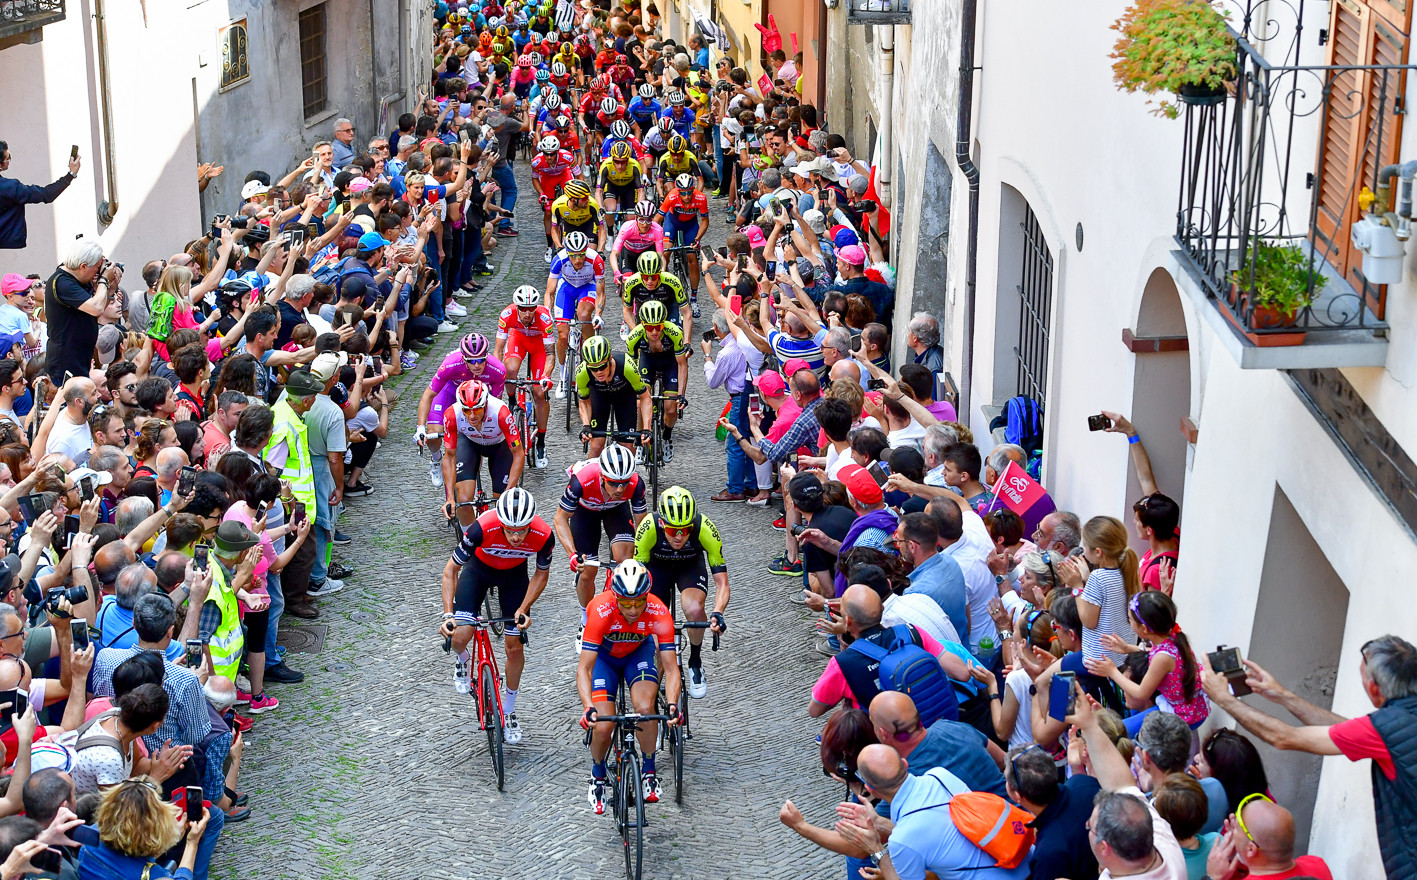 The riders in the San Maurizio-Climb in Pinerolo during stage 12 of the Giro d'Italia 2019.